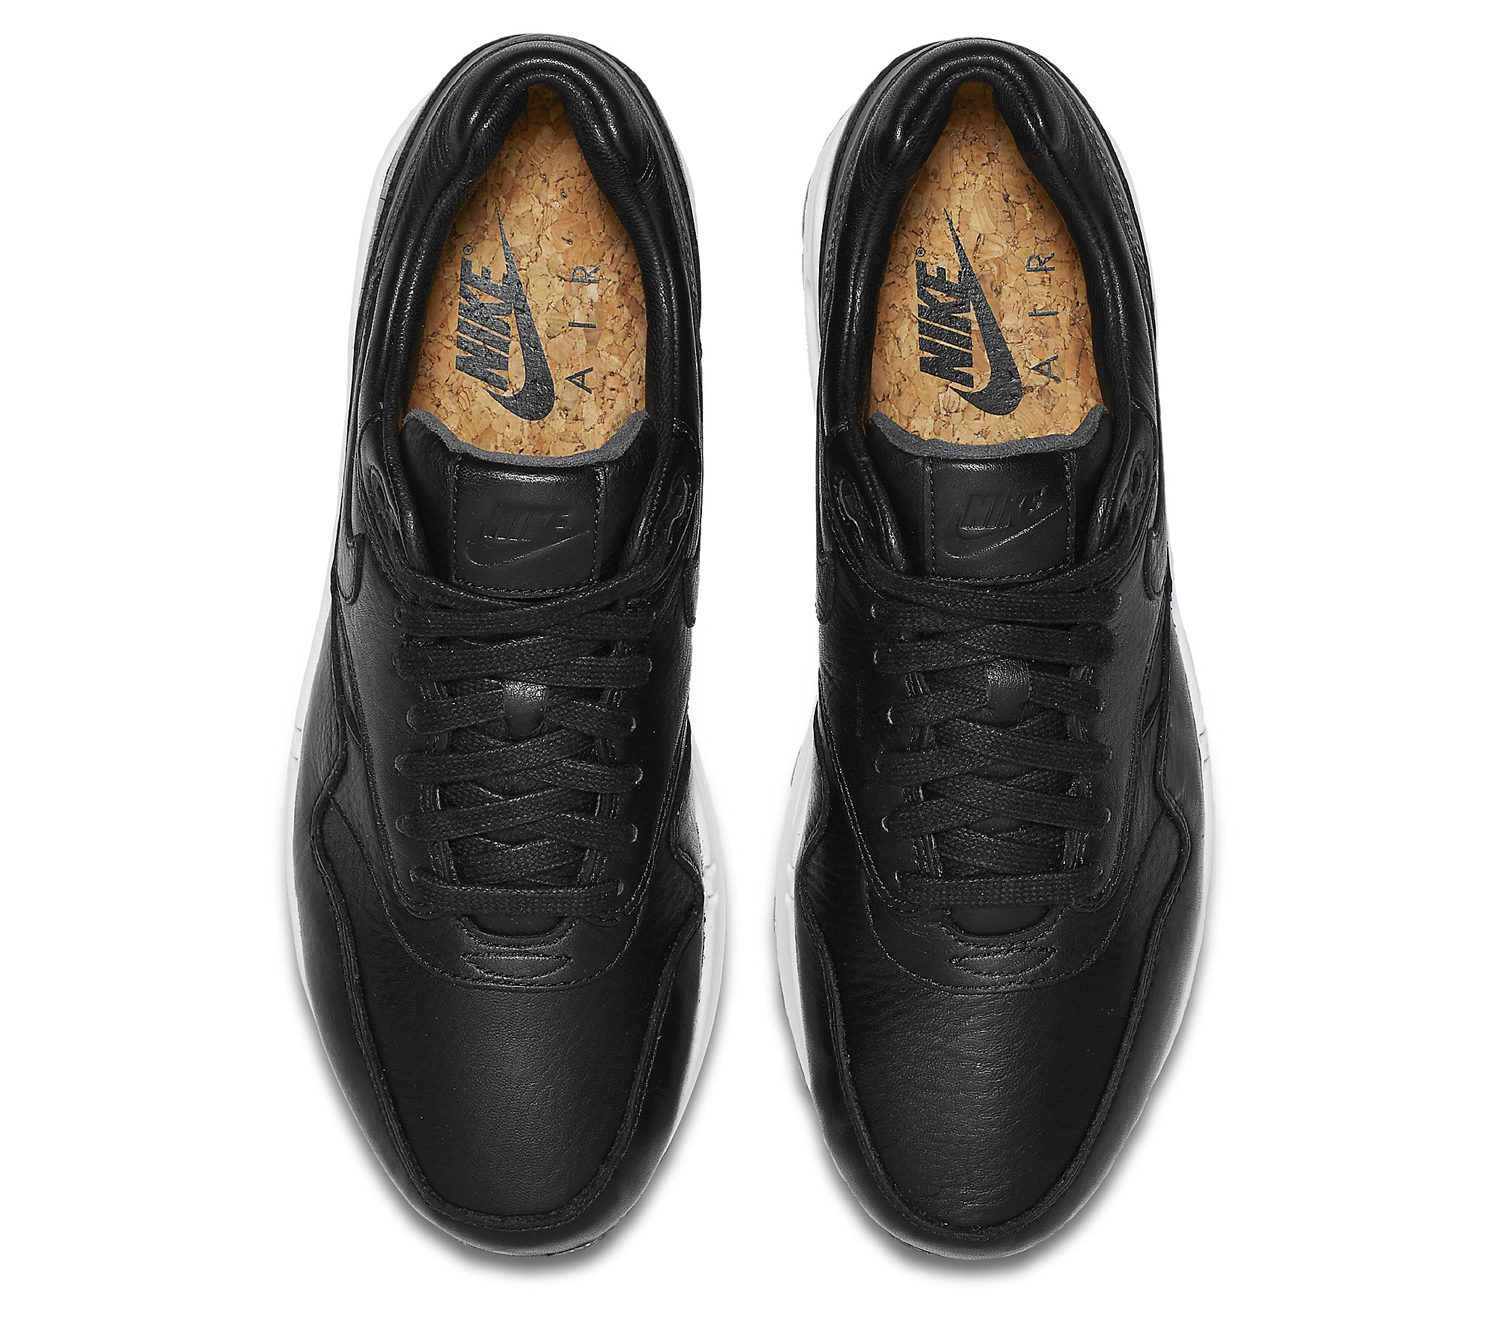 brand new b81c3 43ec4 Nike Air Max 1 Pinnacle Black White Leather Reflective | Sole Collector